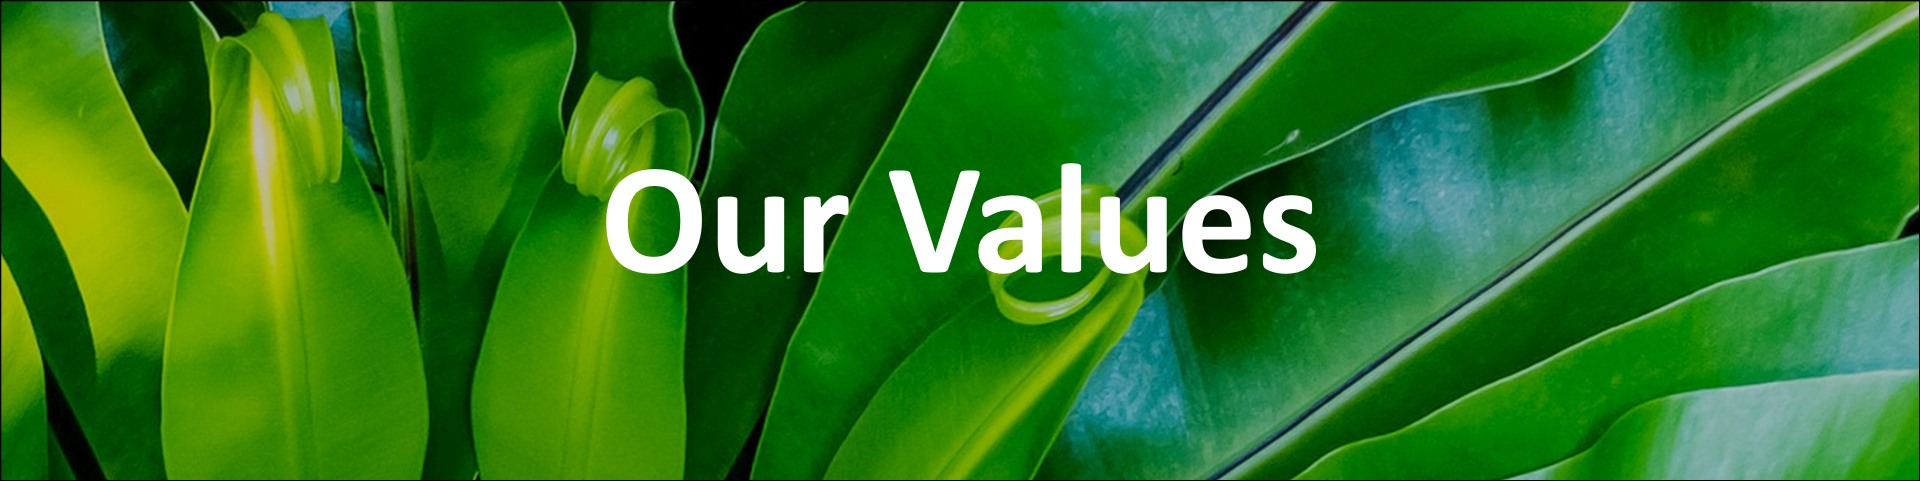 Our Values Longshaw Consulting Group